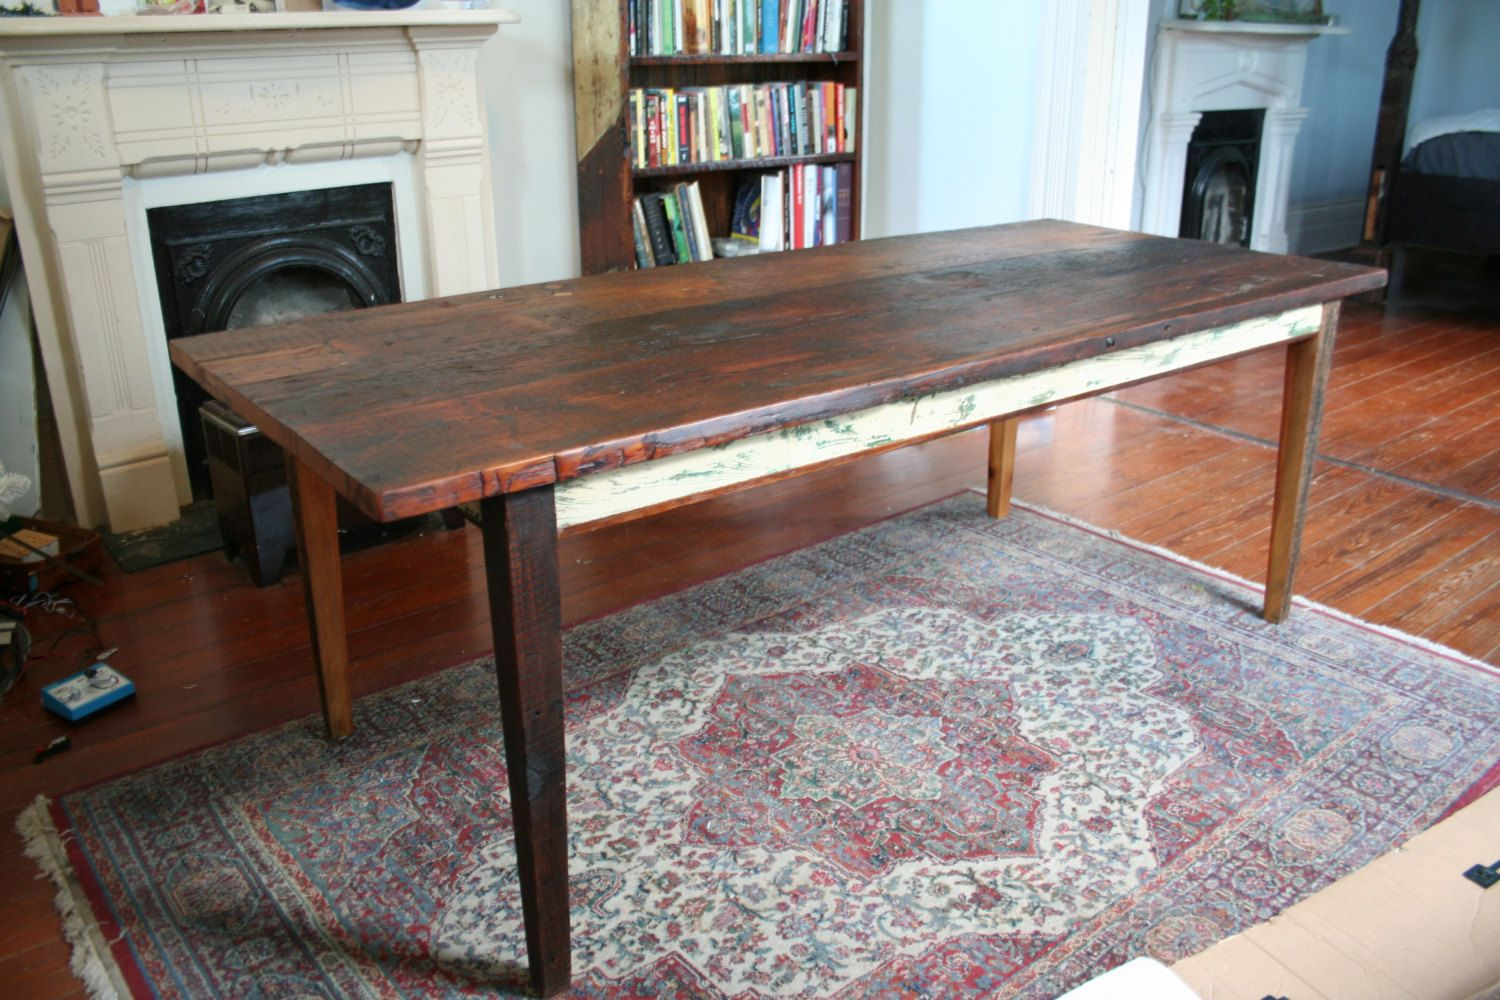 Merveilleux Reclaimed Wood Rustic Farm Table By Great NEW ORLEANS @Etsy Artist, Matthew  Holdren